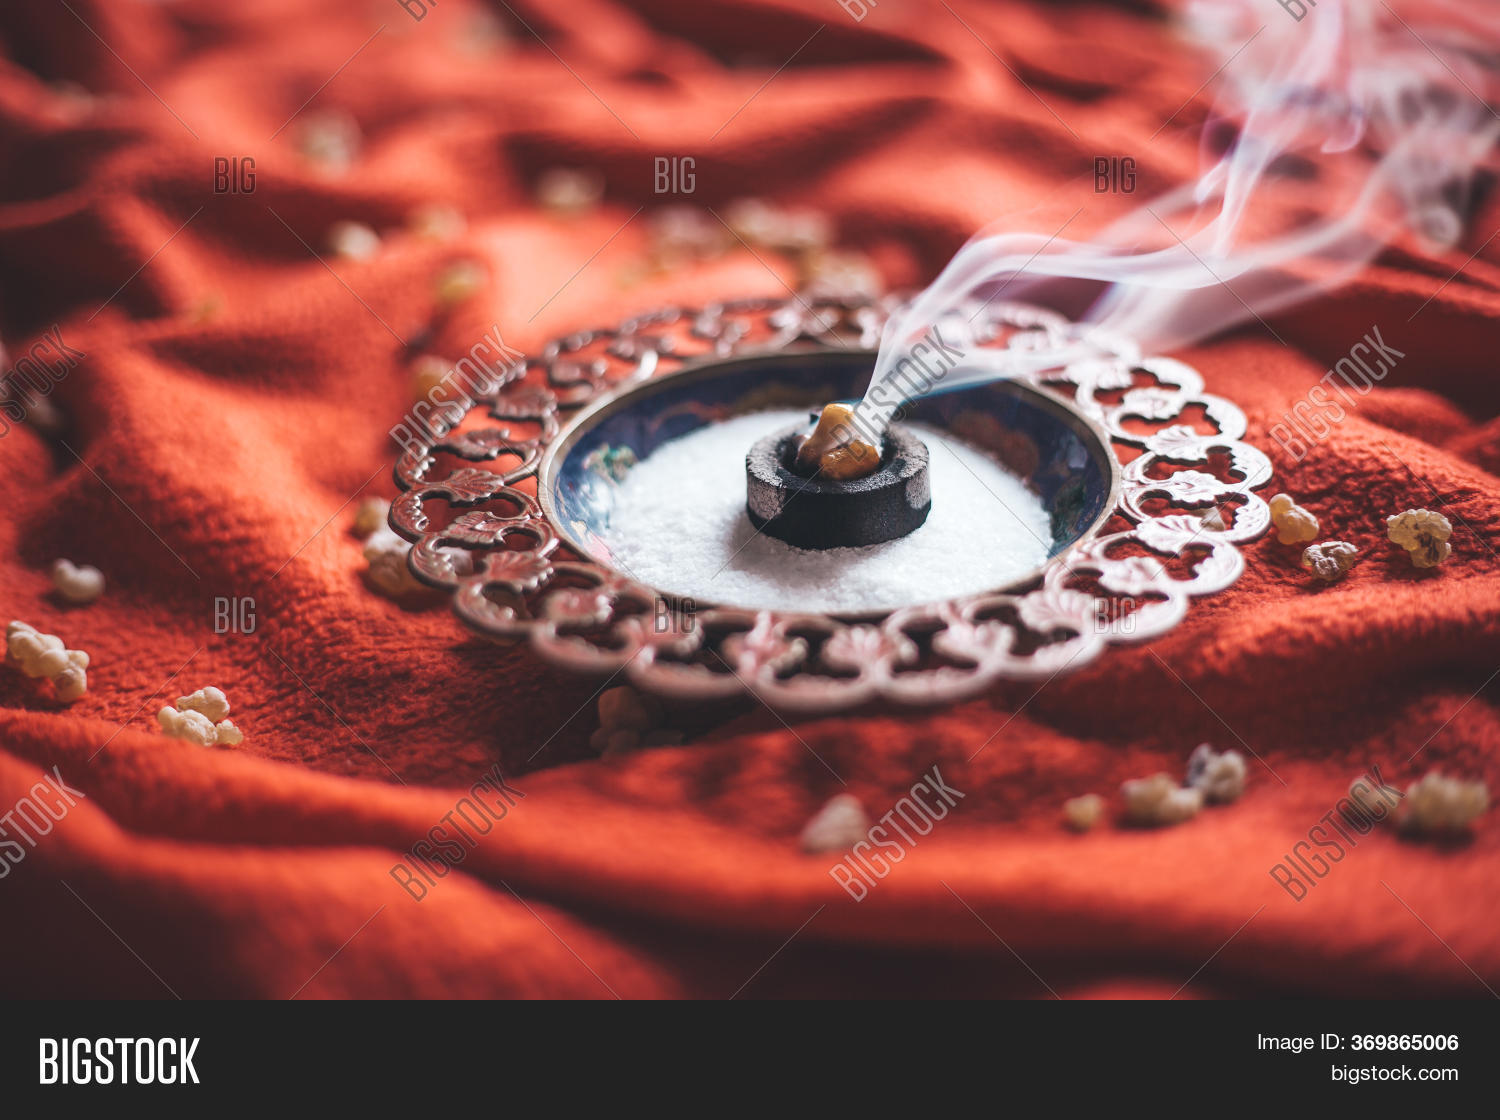 Frankincense Burning Image Photo Free Trial Bigstock